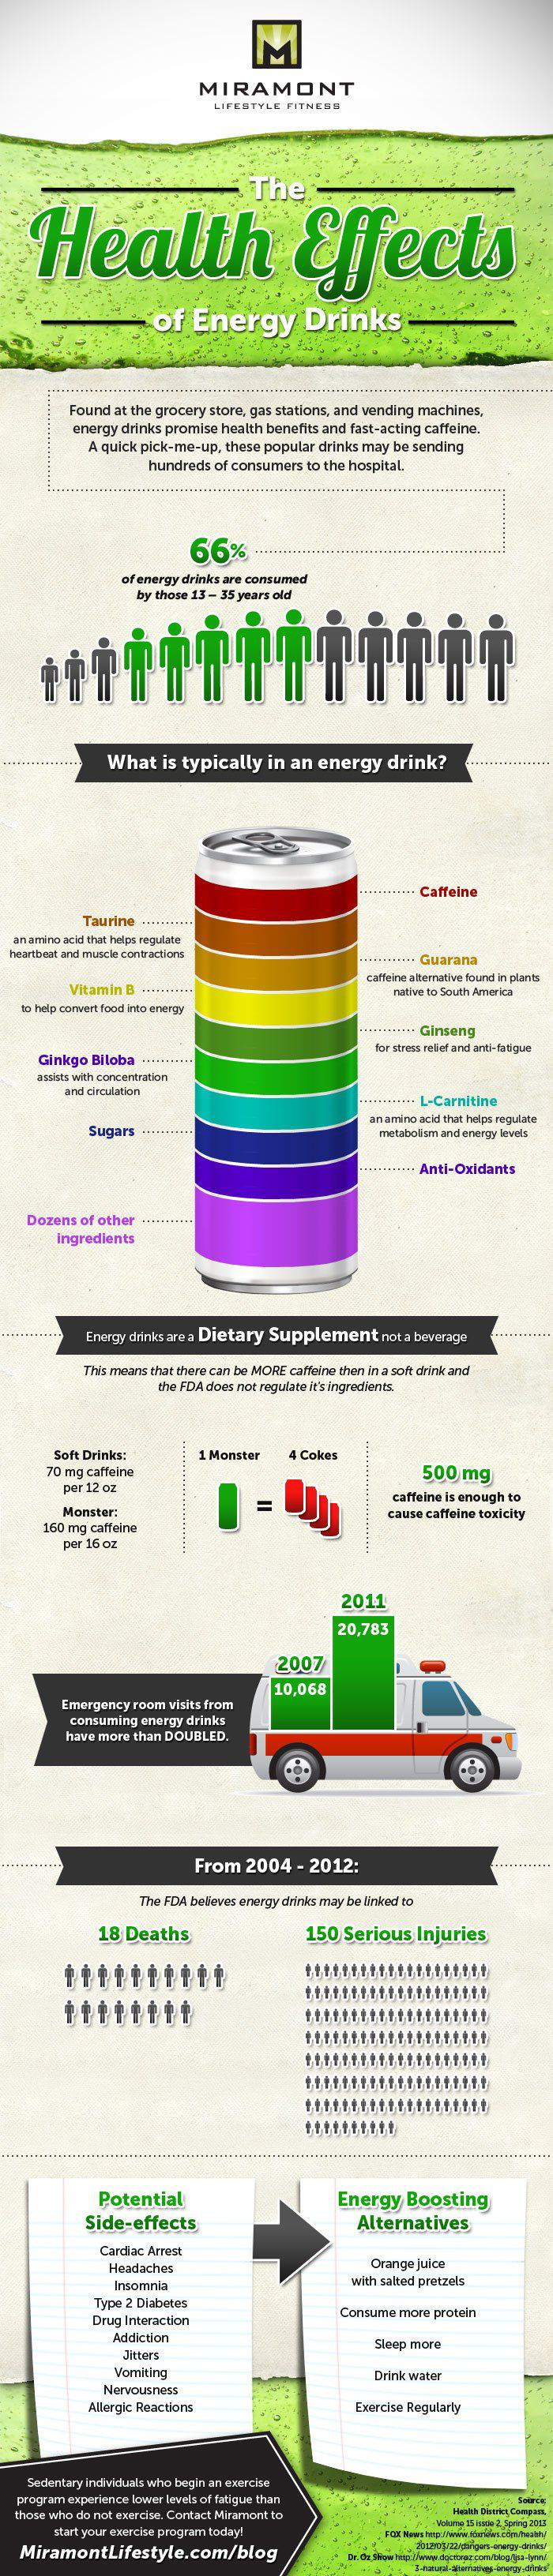 Energy Drinks: The Dangerous Downside - Infographic